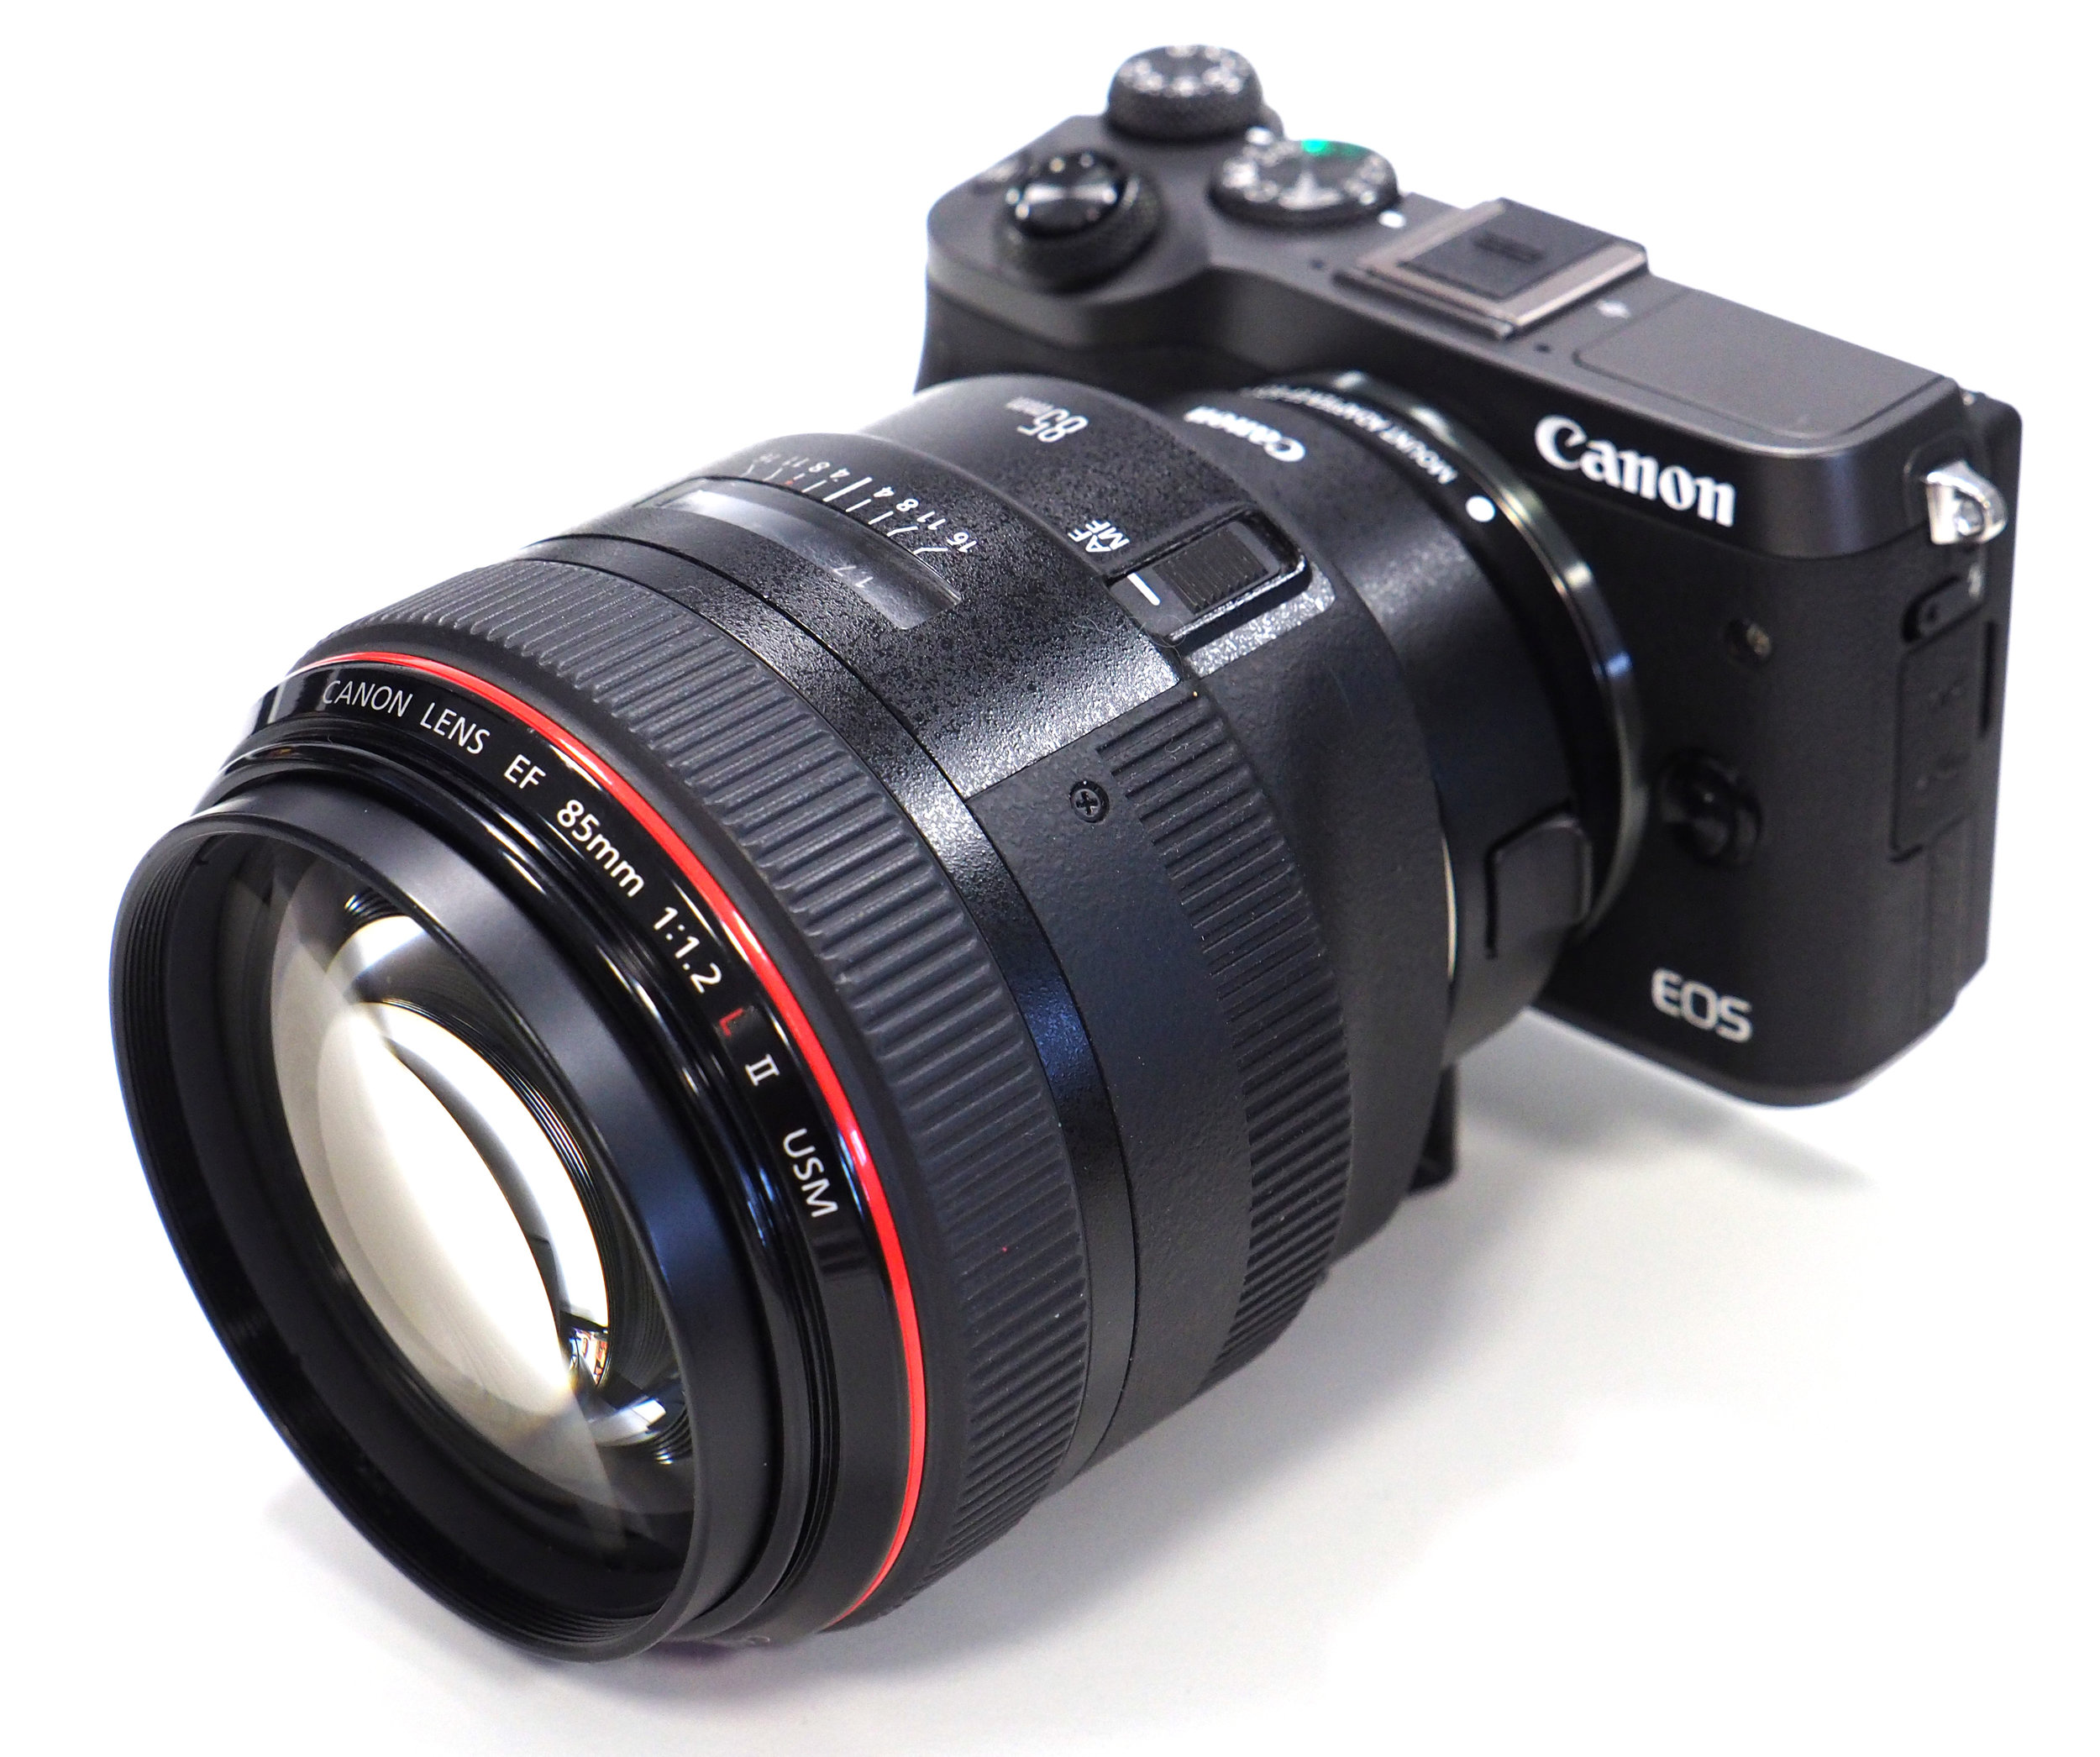 highres-Canon-EOS-M6-with-adapter-and-85mm-f1-2-L-II-USM-P4120001_1492004168.jpg